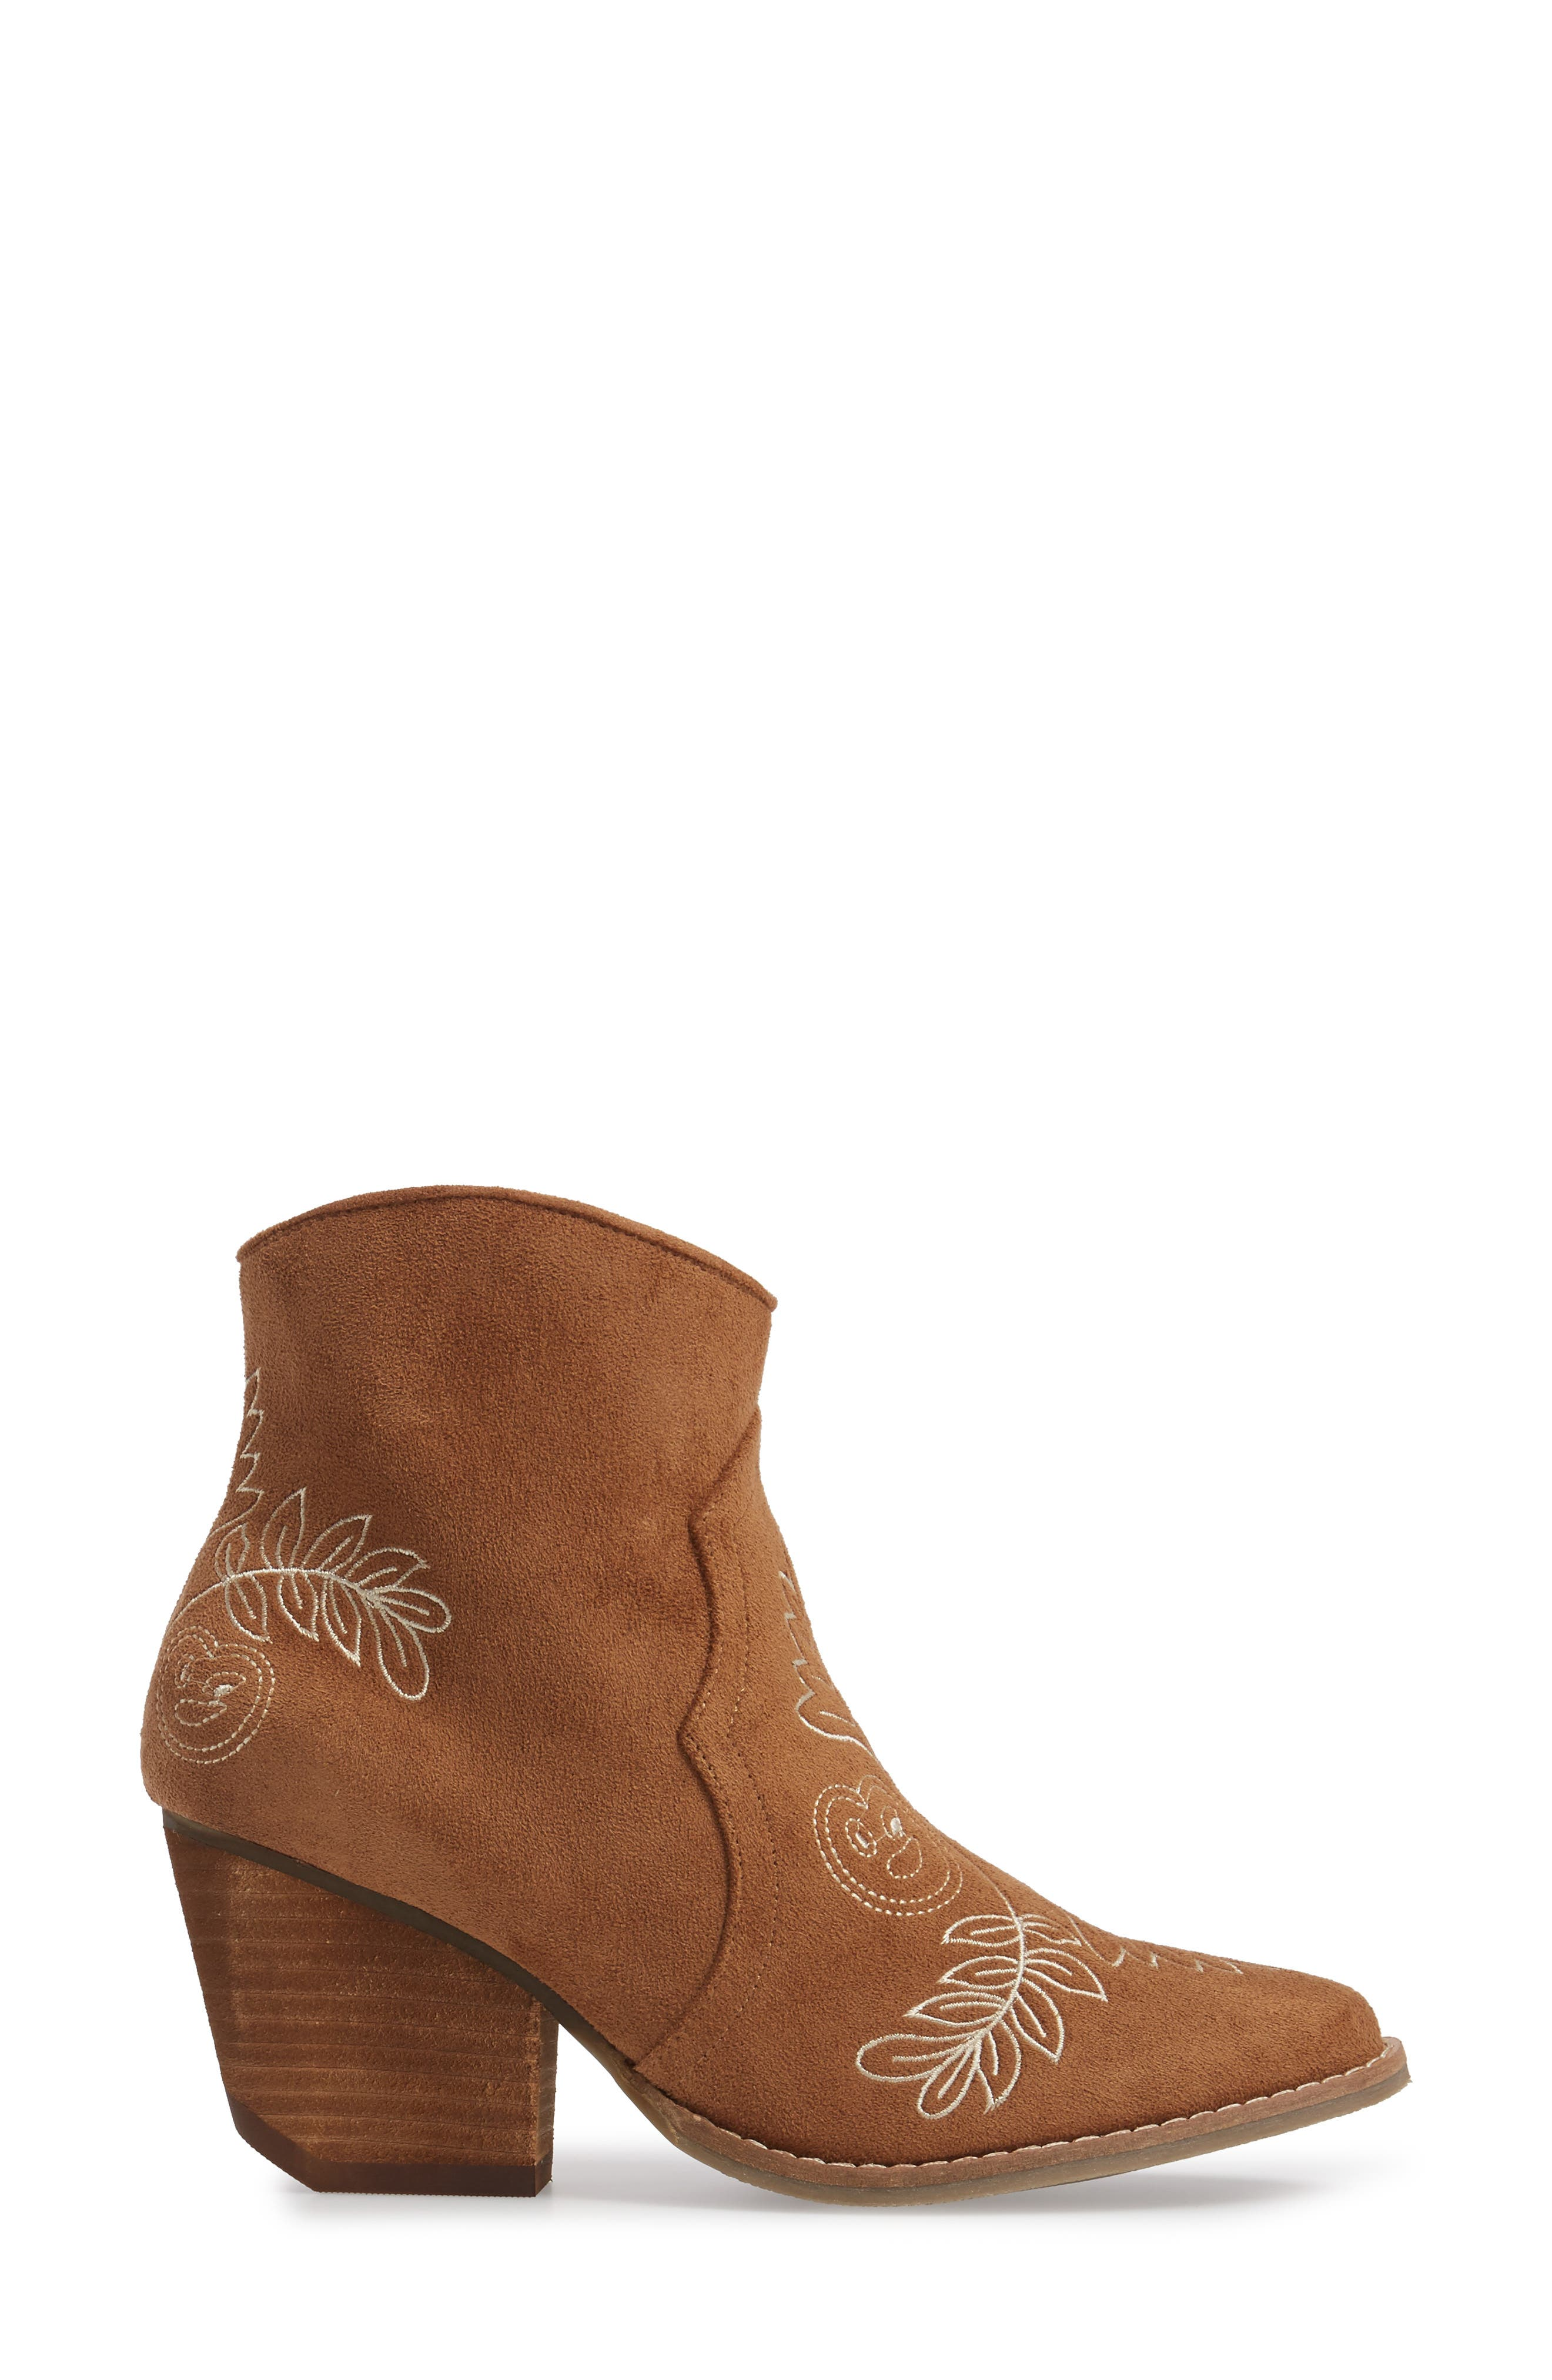 Alternate Image 3  - Coconuts by Matisse Axis Embroidered Bootie (Women)